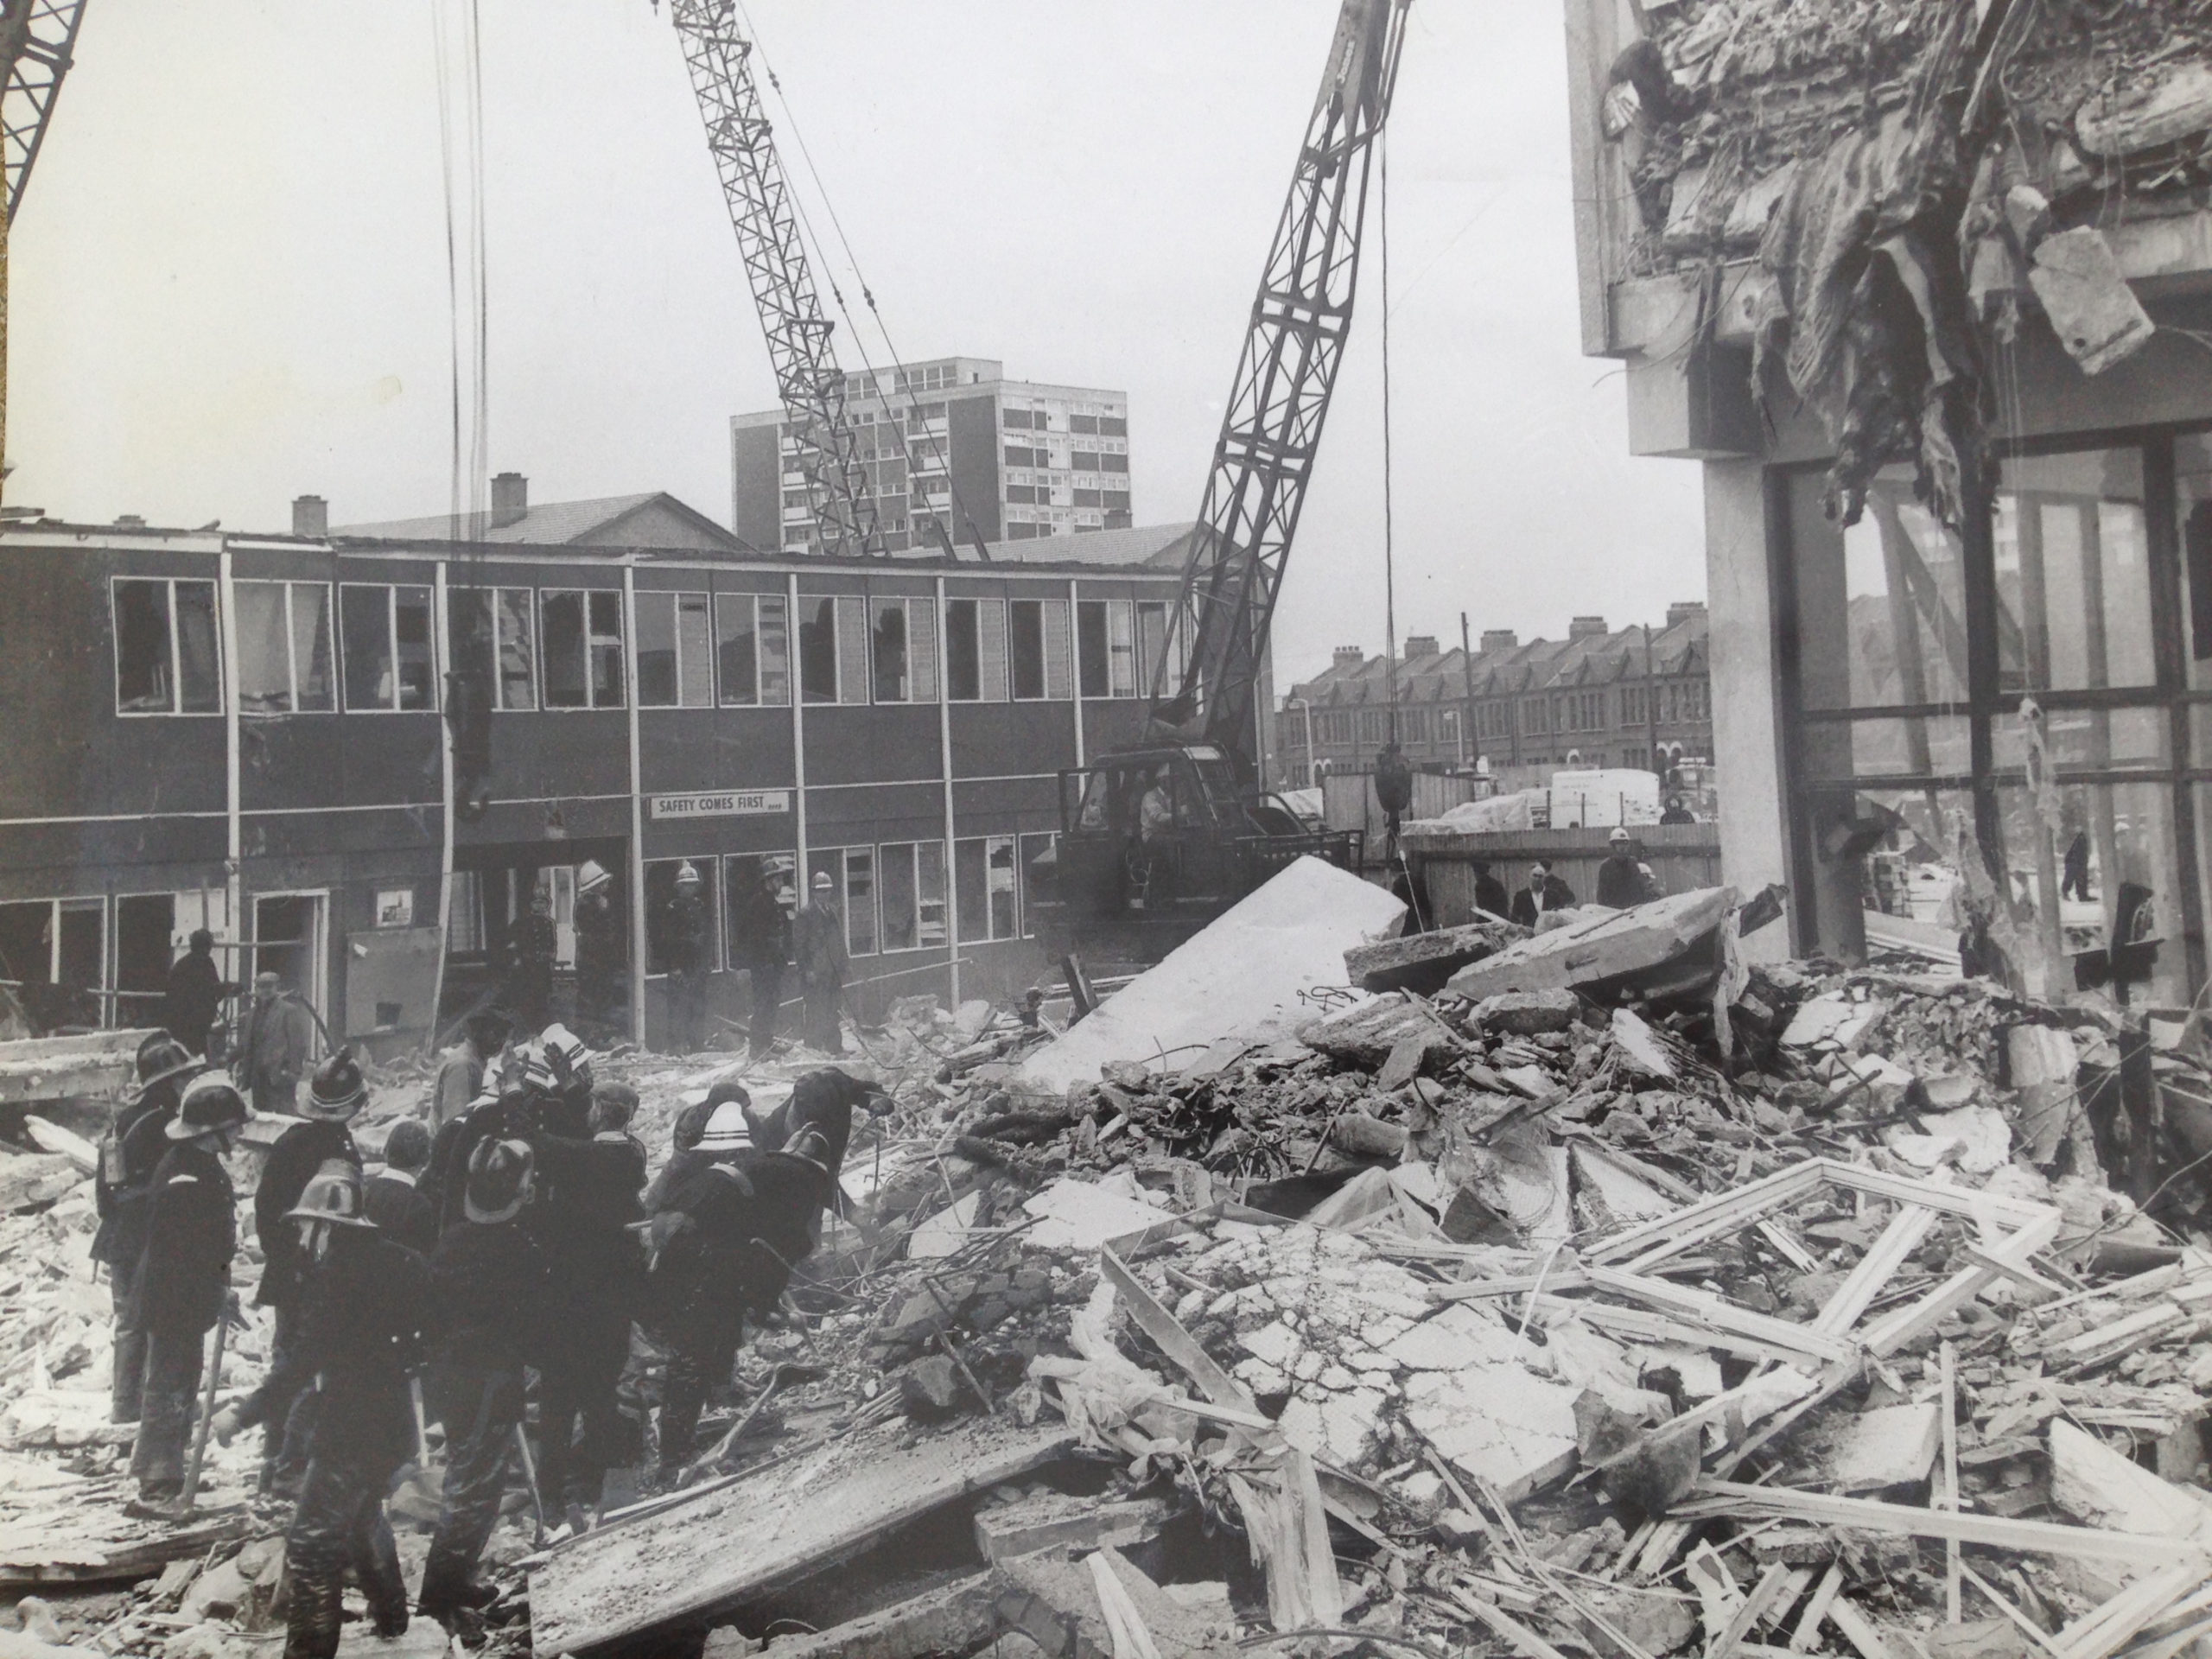 A huge pile of rubble lies in the foreground, with a small cluster of people close by to the left. Behind is a low brick building with two cranes overhead.